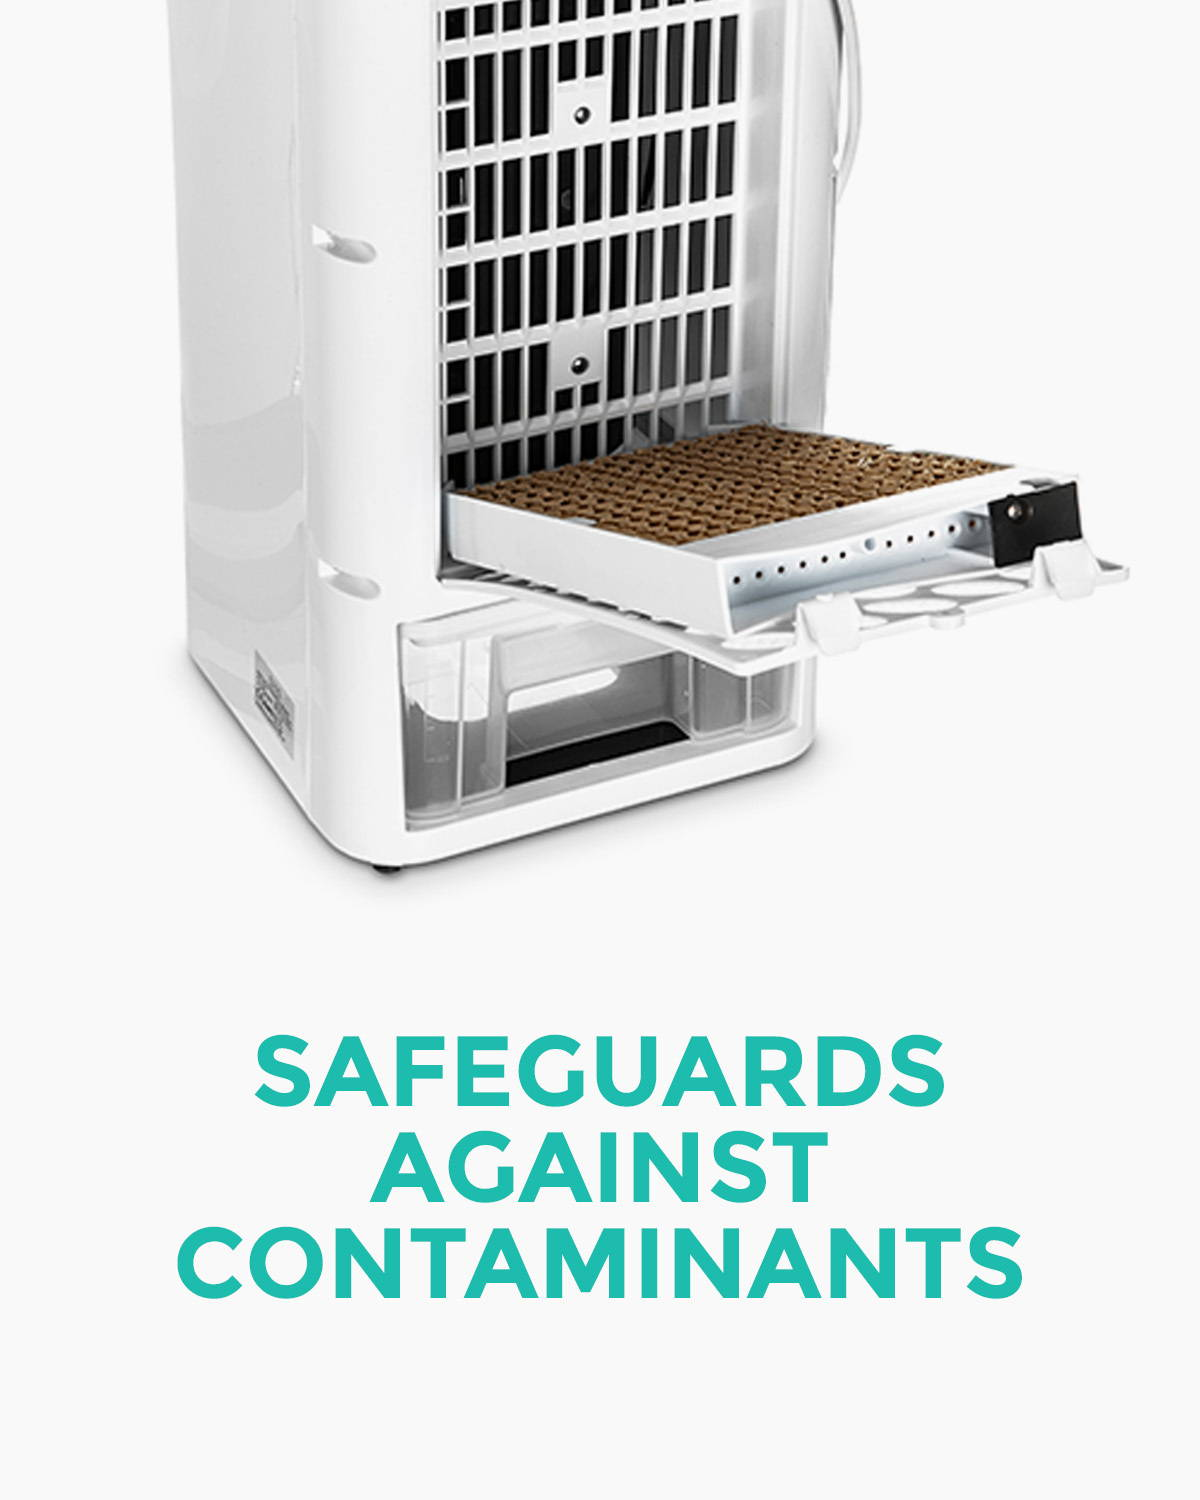 Safeguards against contaminants